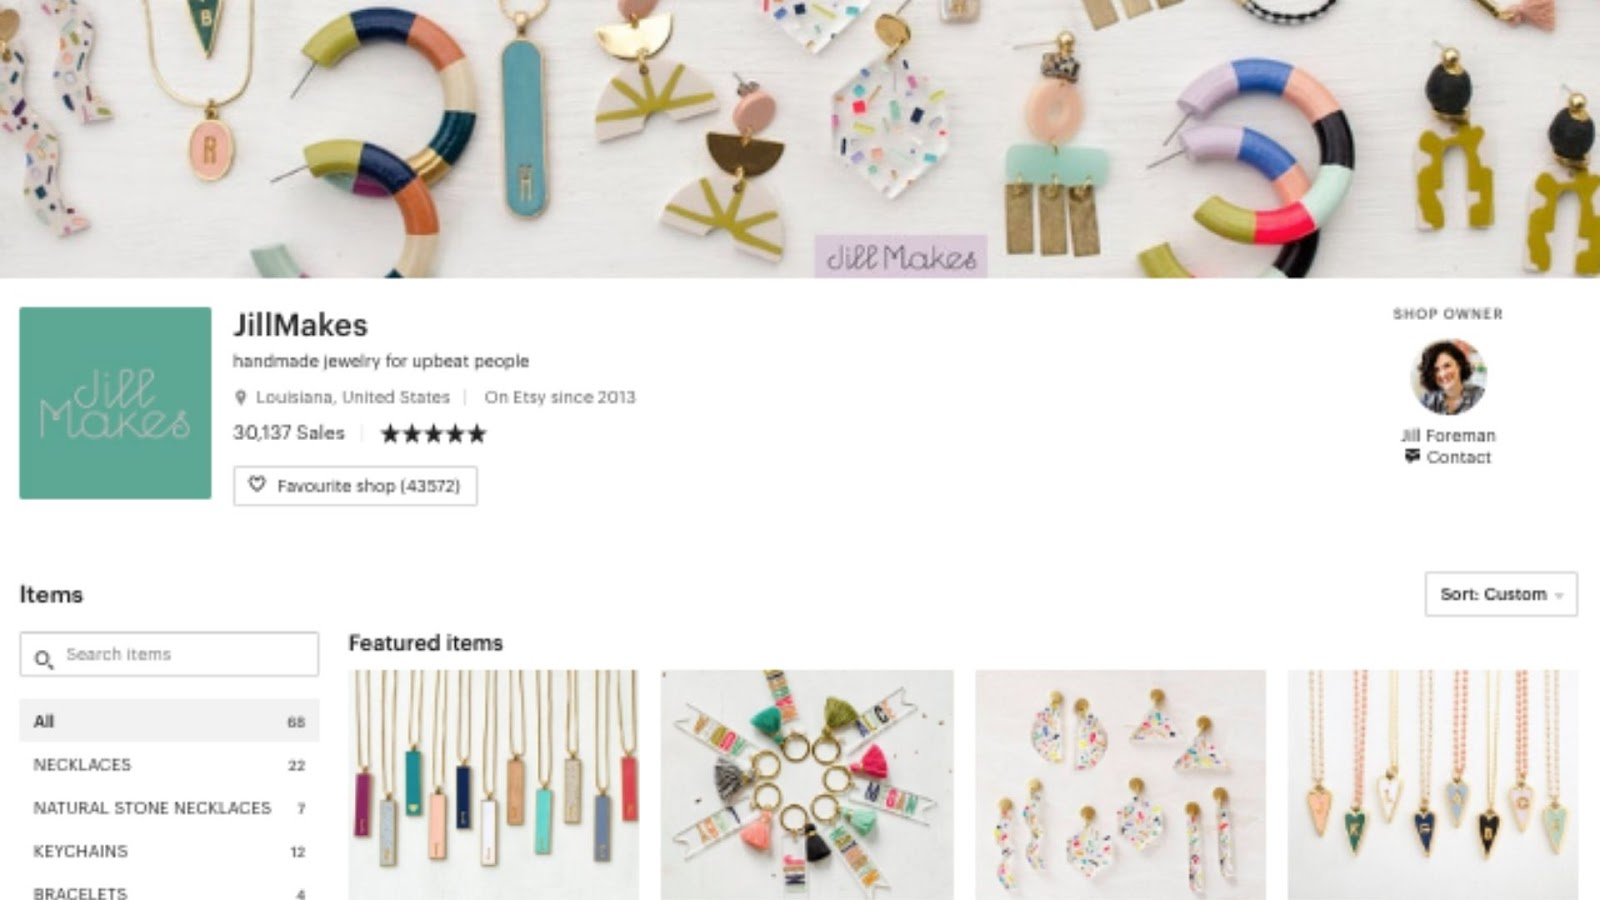 personal branding - Jill Makes on Etsy